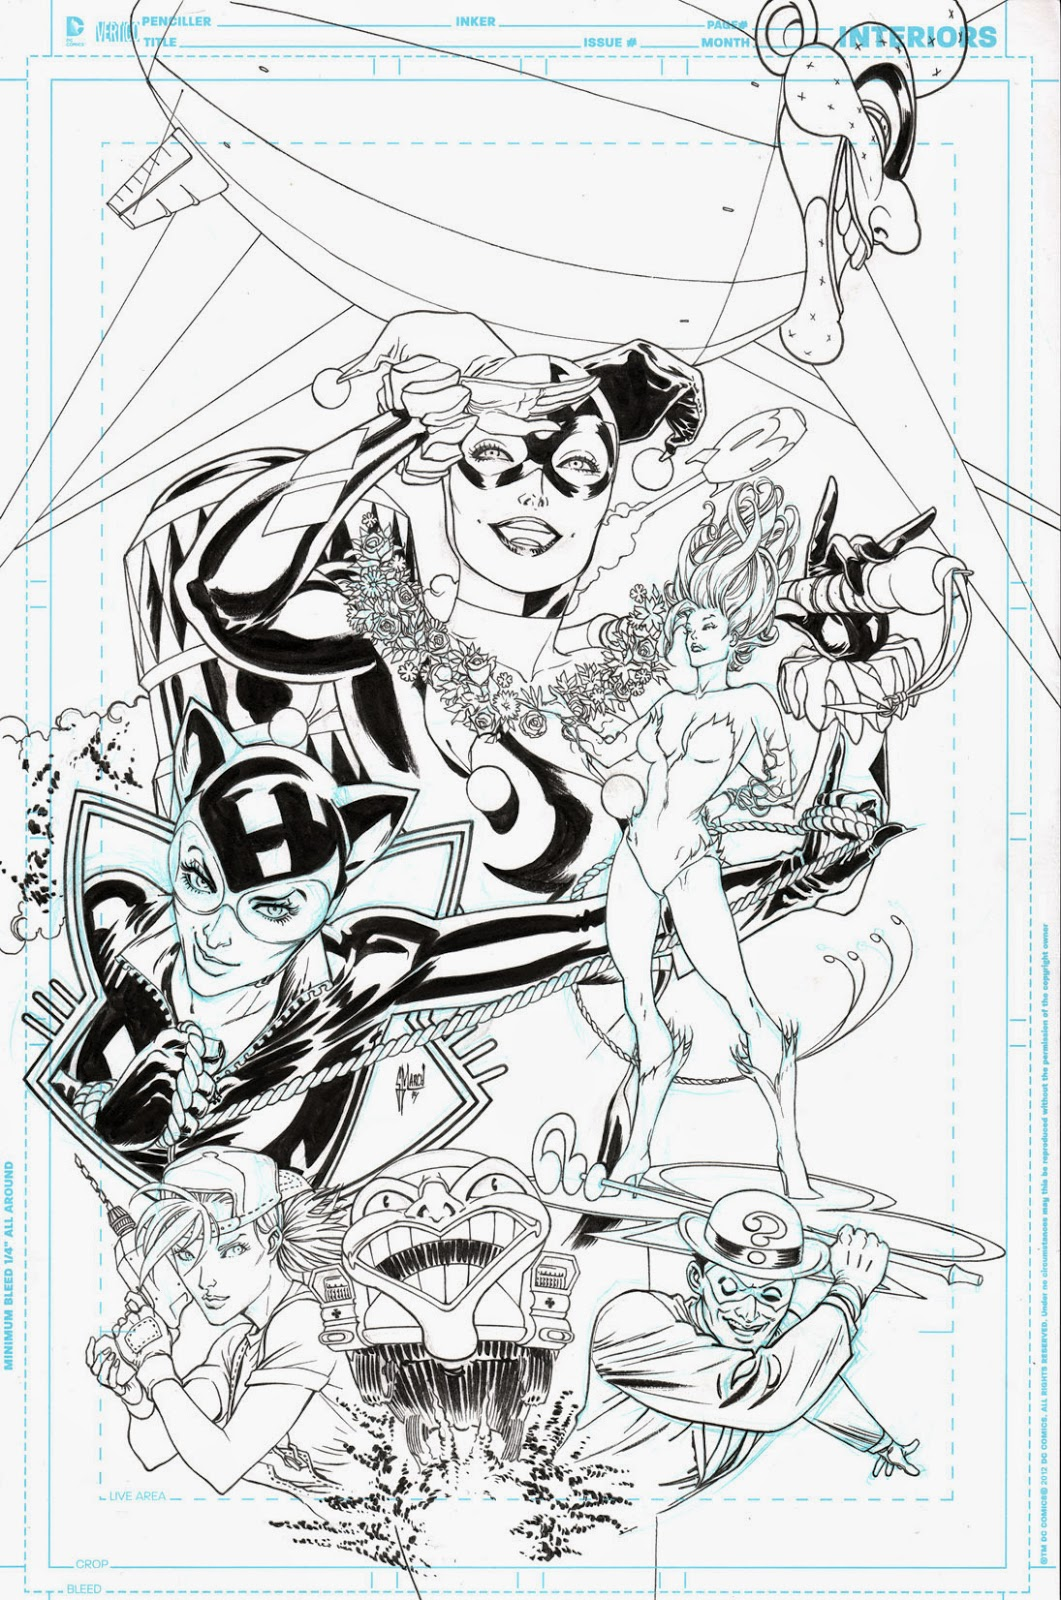 GOTHAM CITY SIRENS TPB cover process by Guillem March